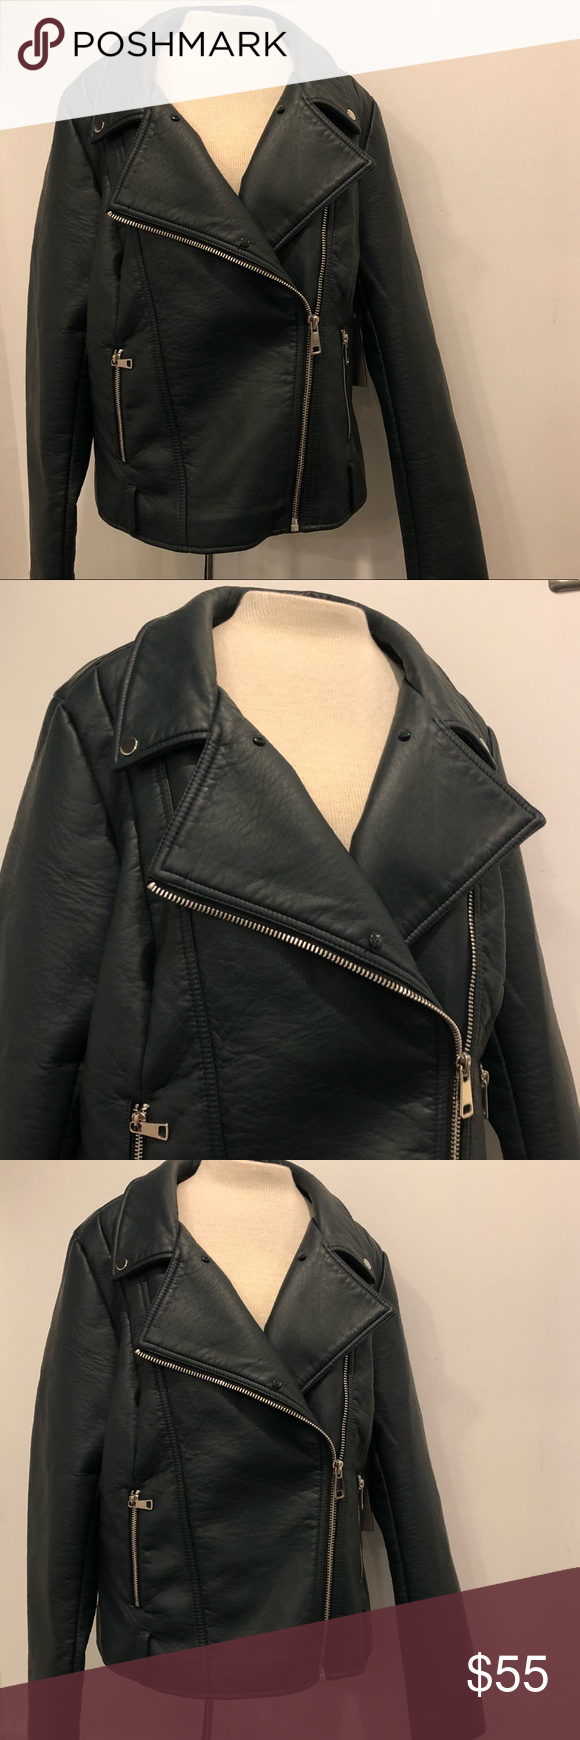 NWOT FOREVER 21 PLUS PREMIUM FAUX LEATHER JACKET Forever